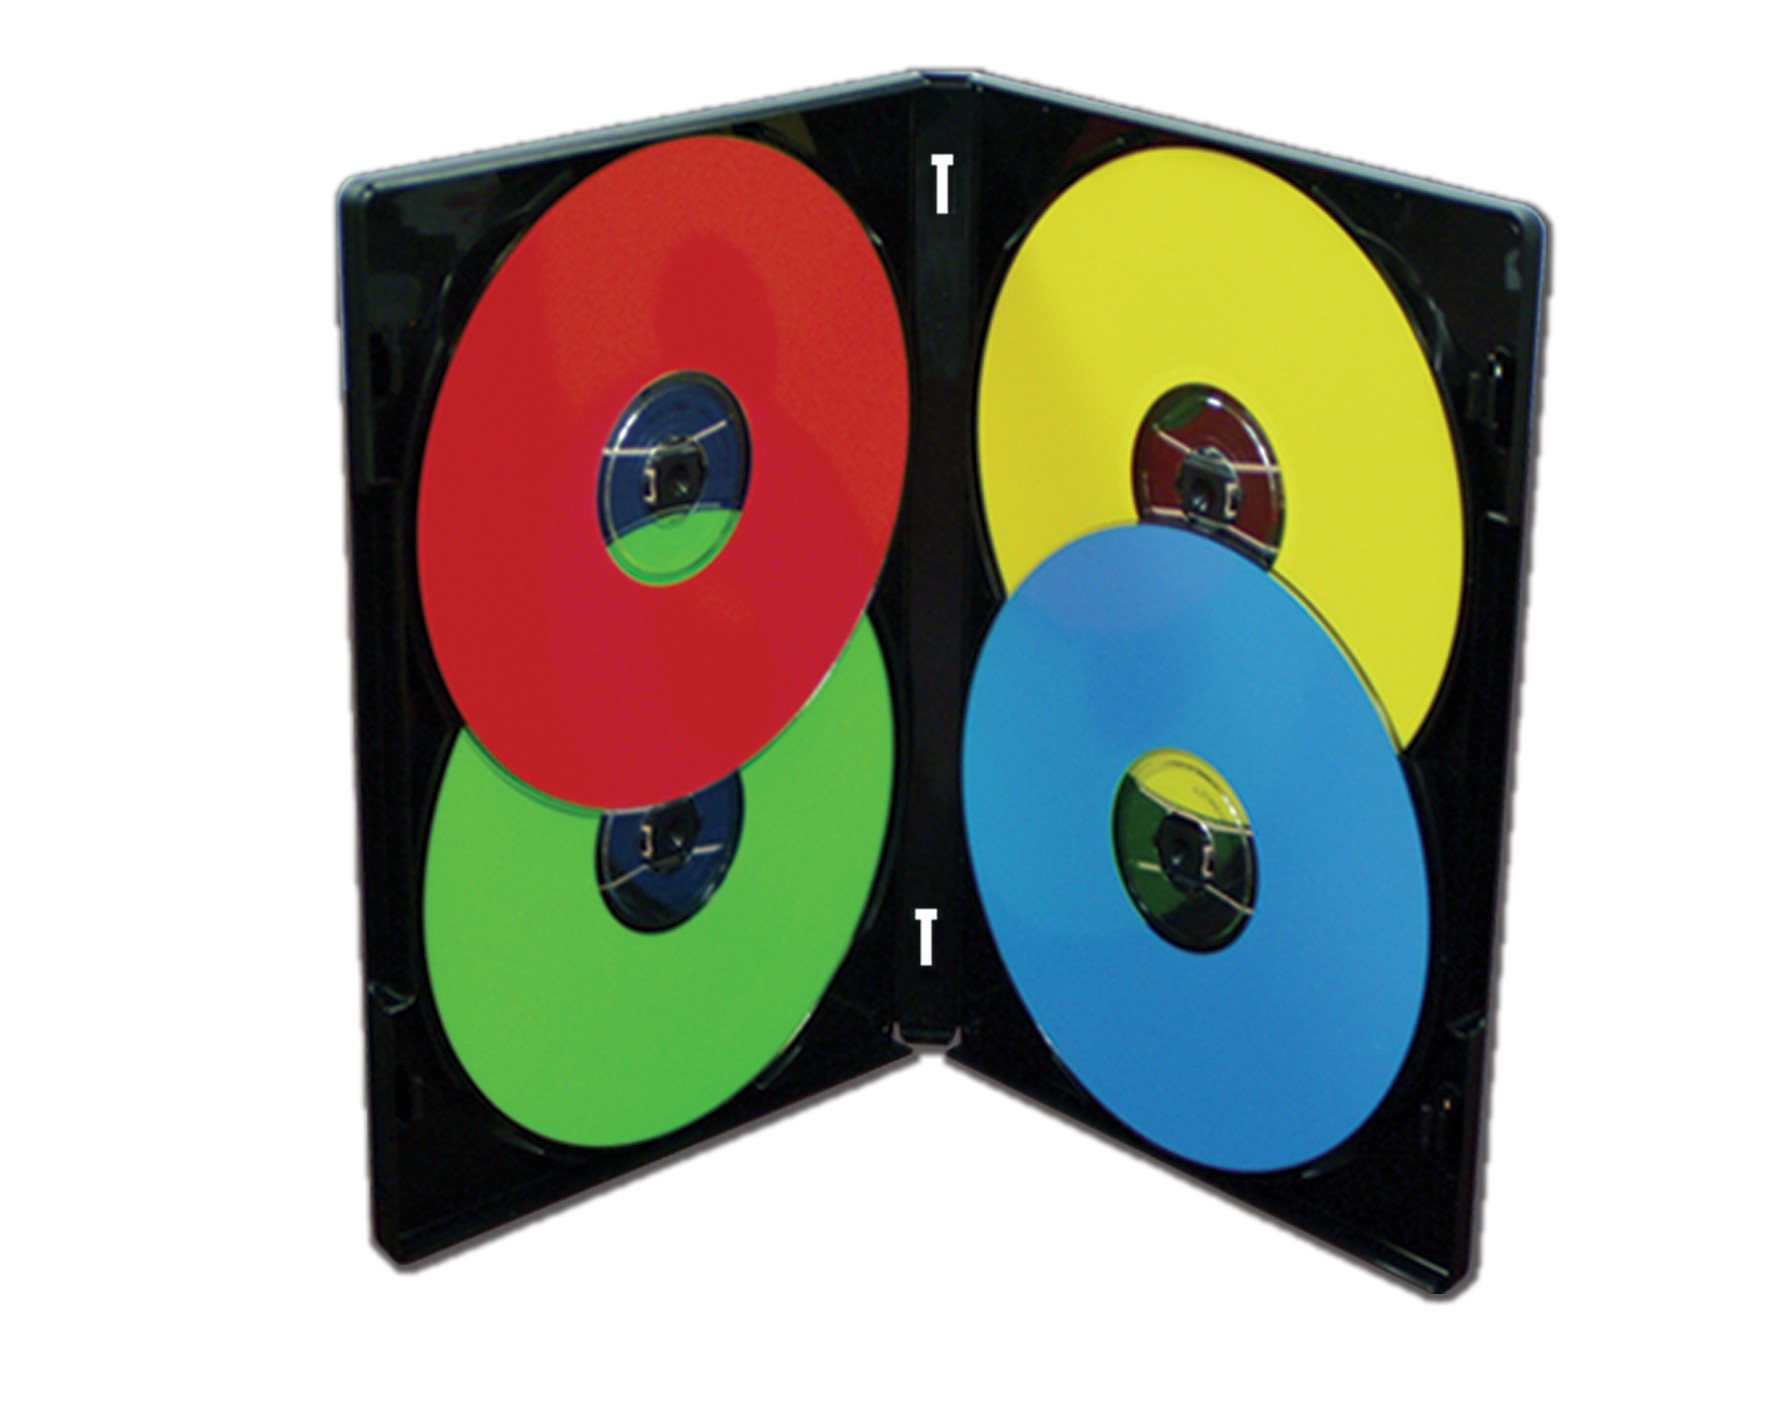 MultiPack 4 CD/DVD Albums Black - 25 pack